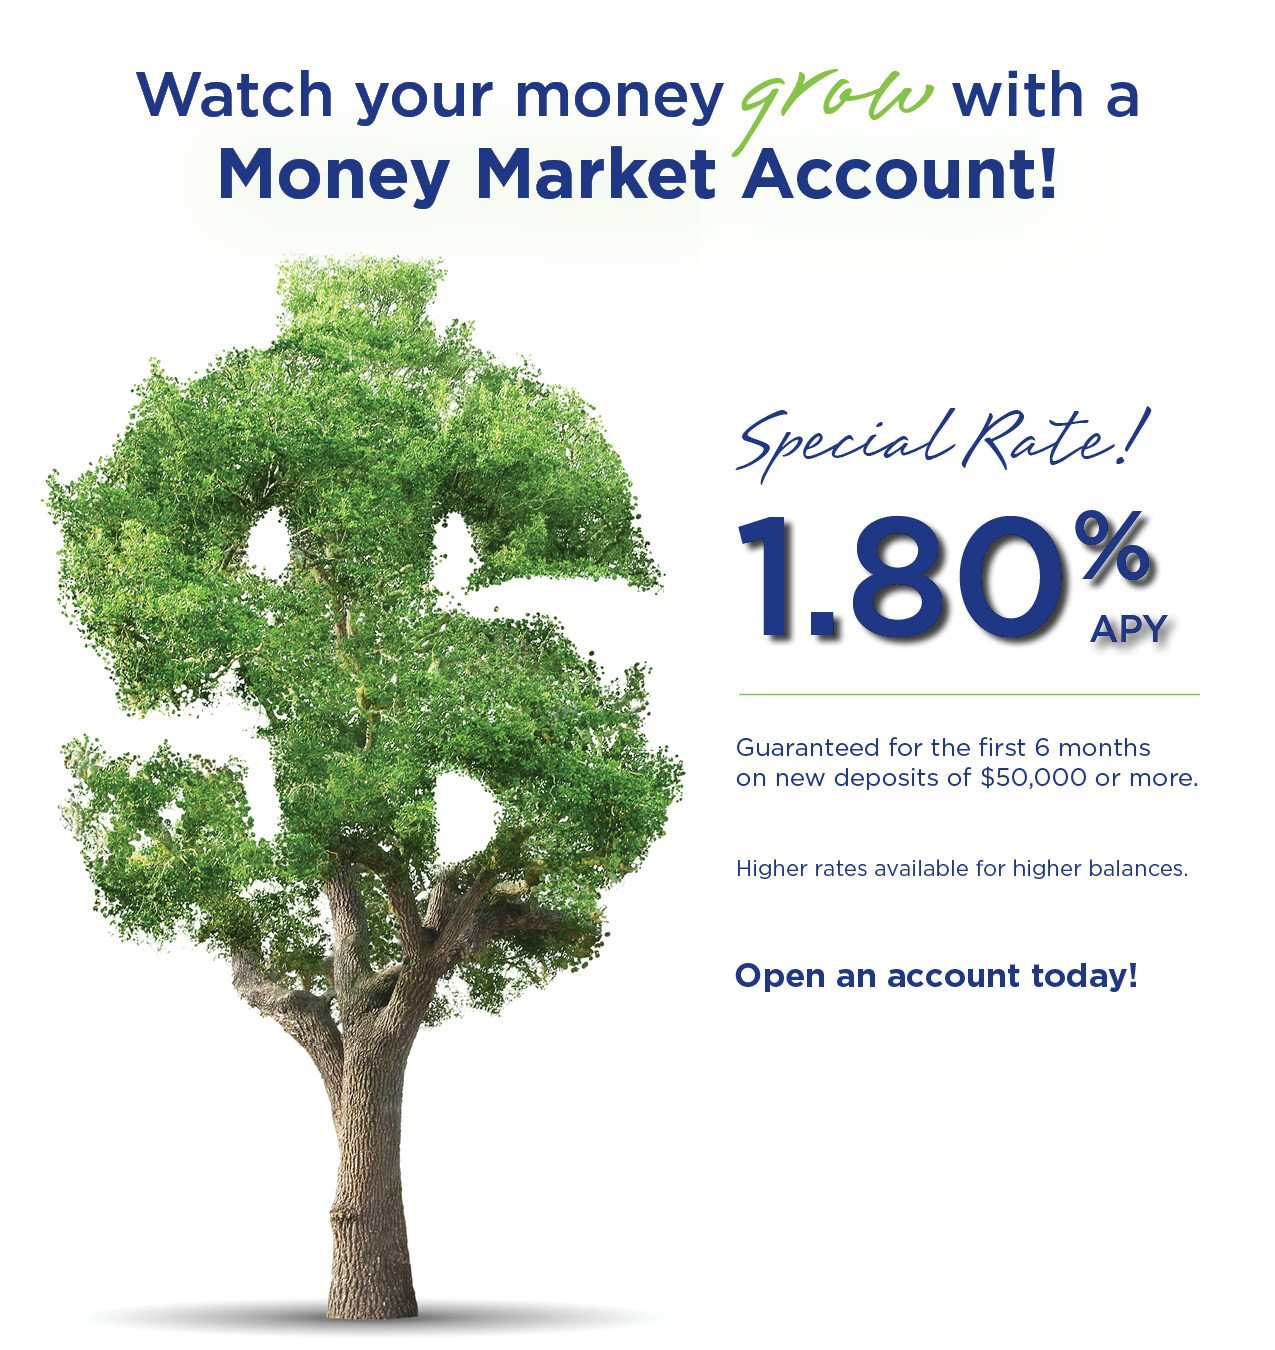 Old Point National Bank Money Market Special